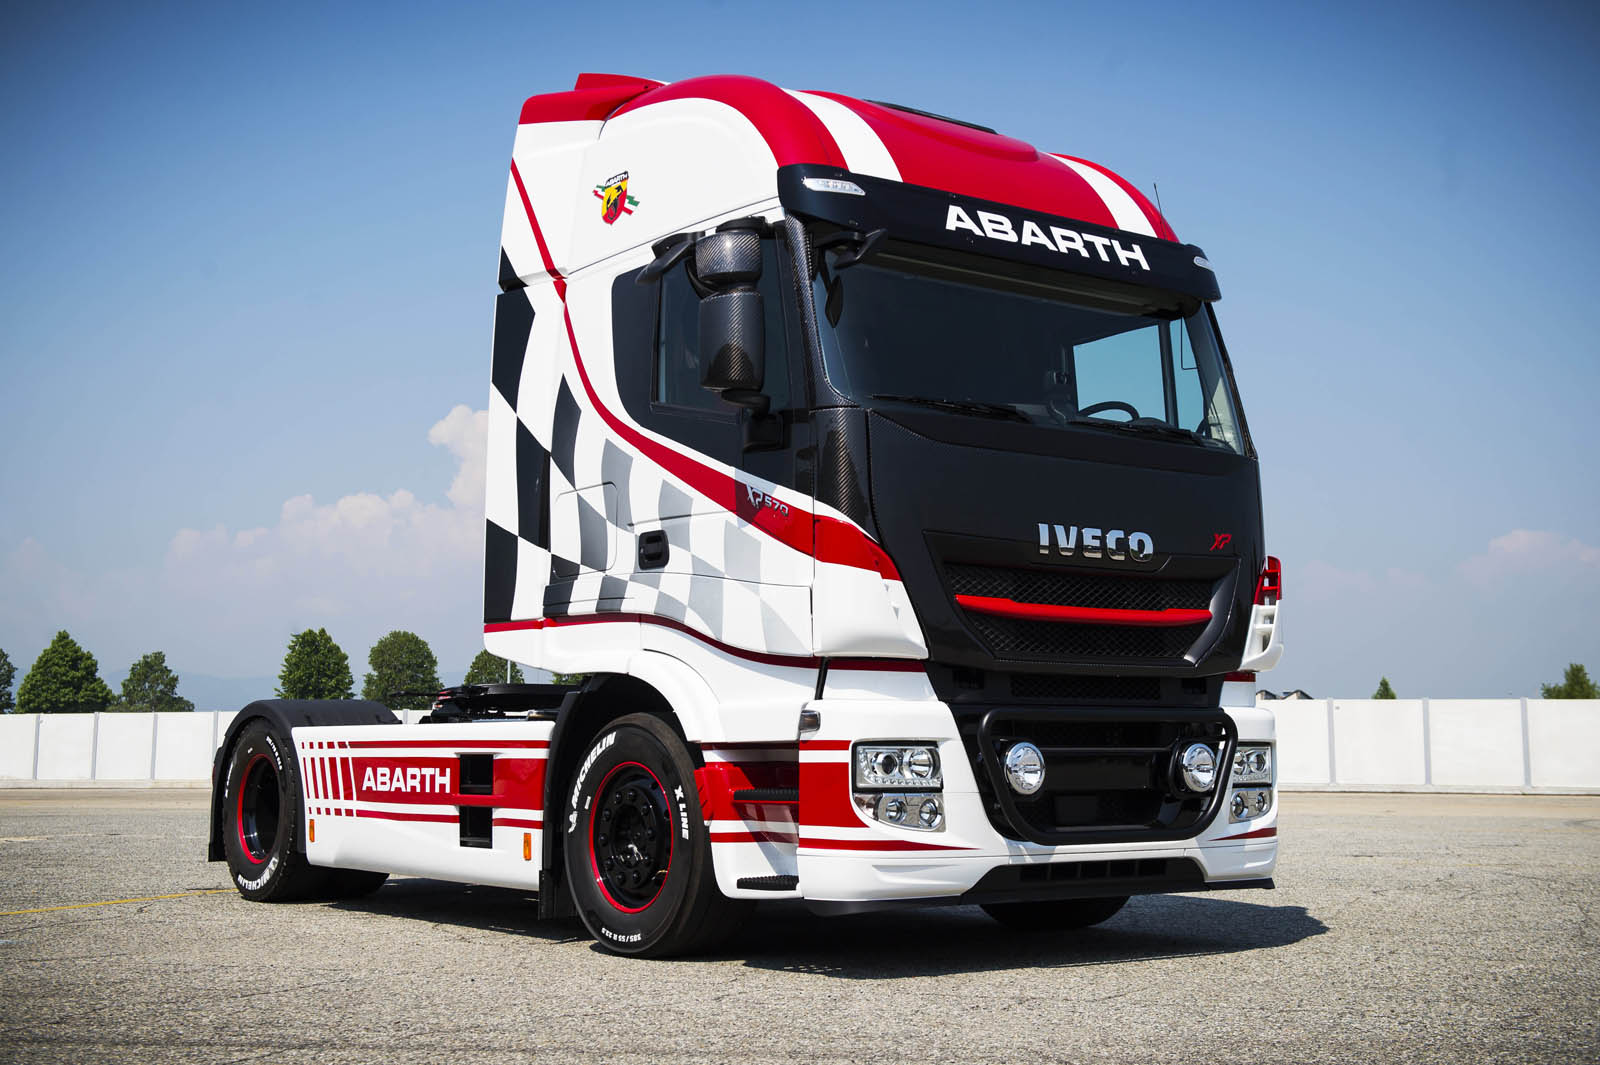 Abarth Iveco truck (4)